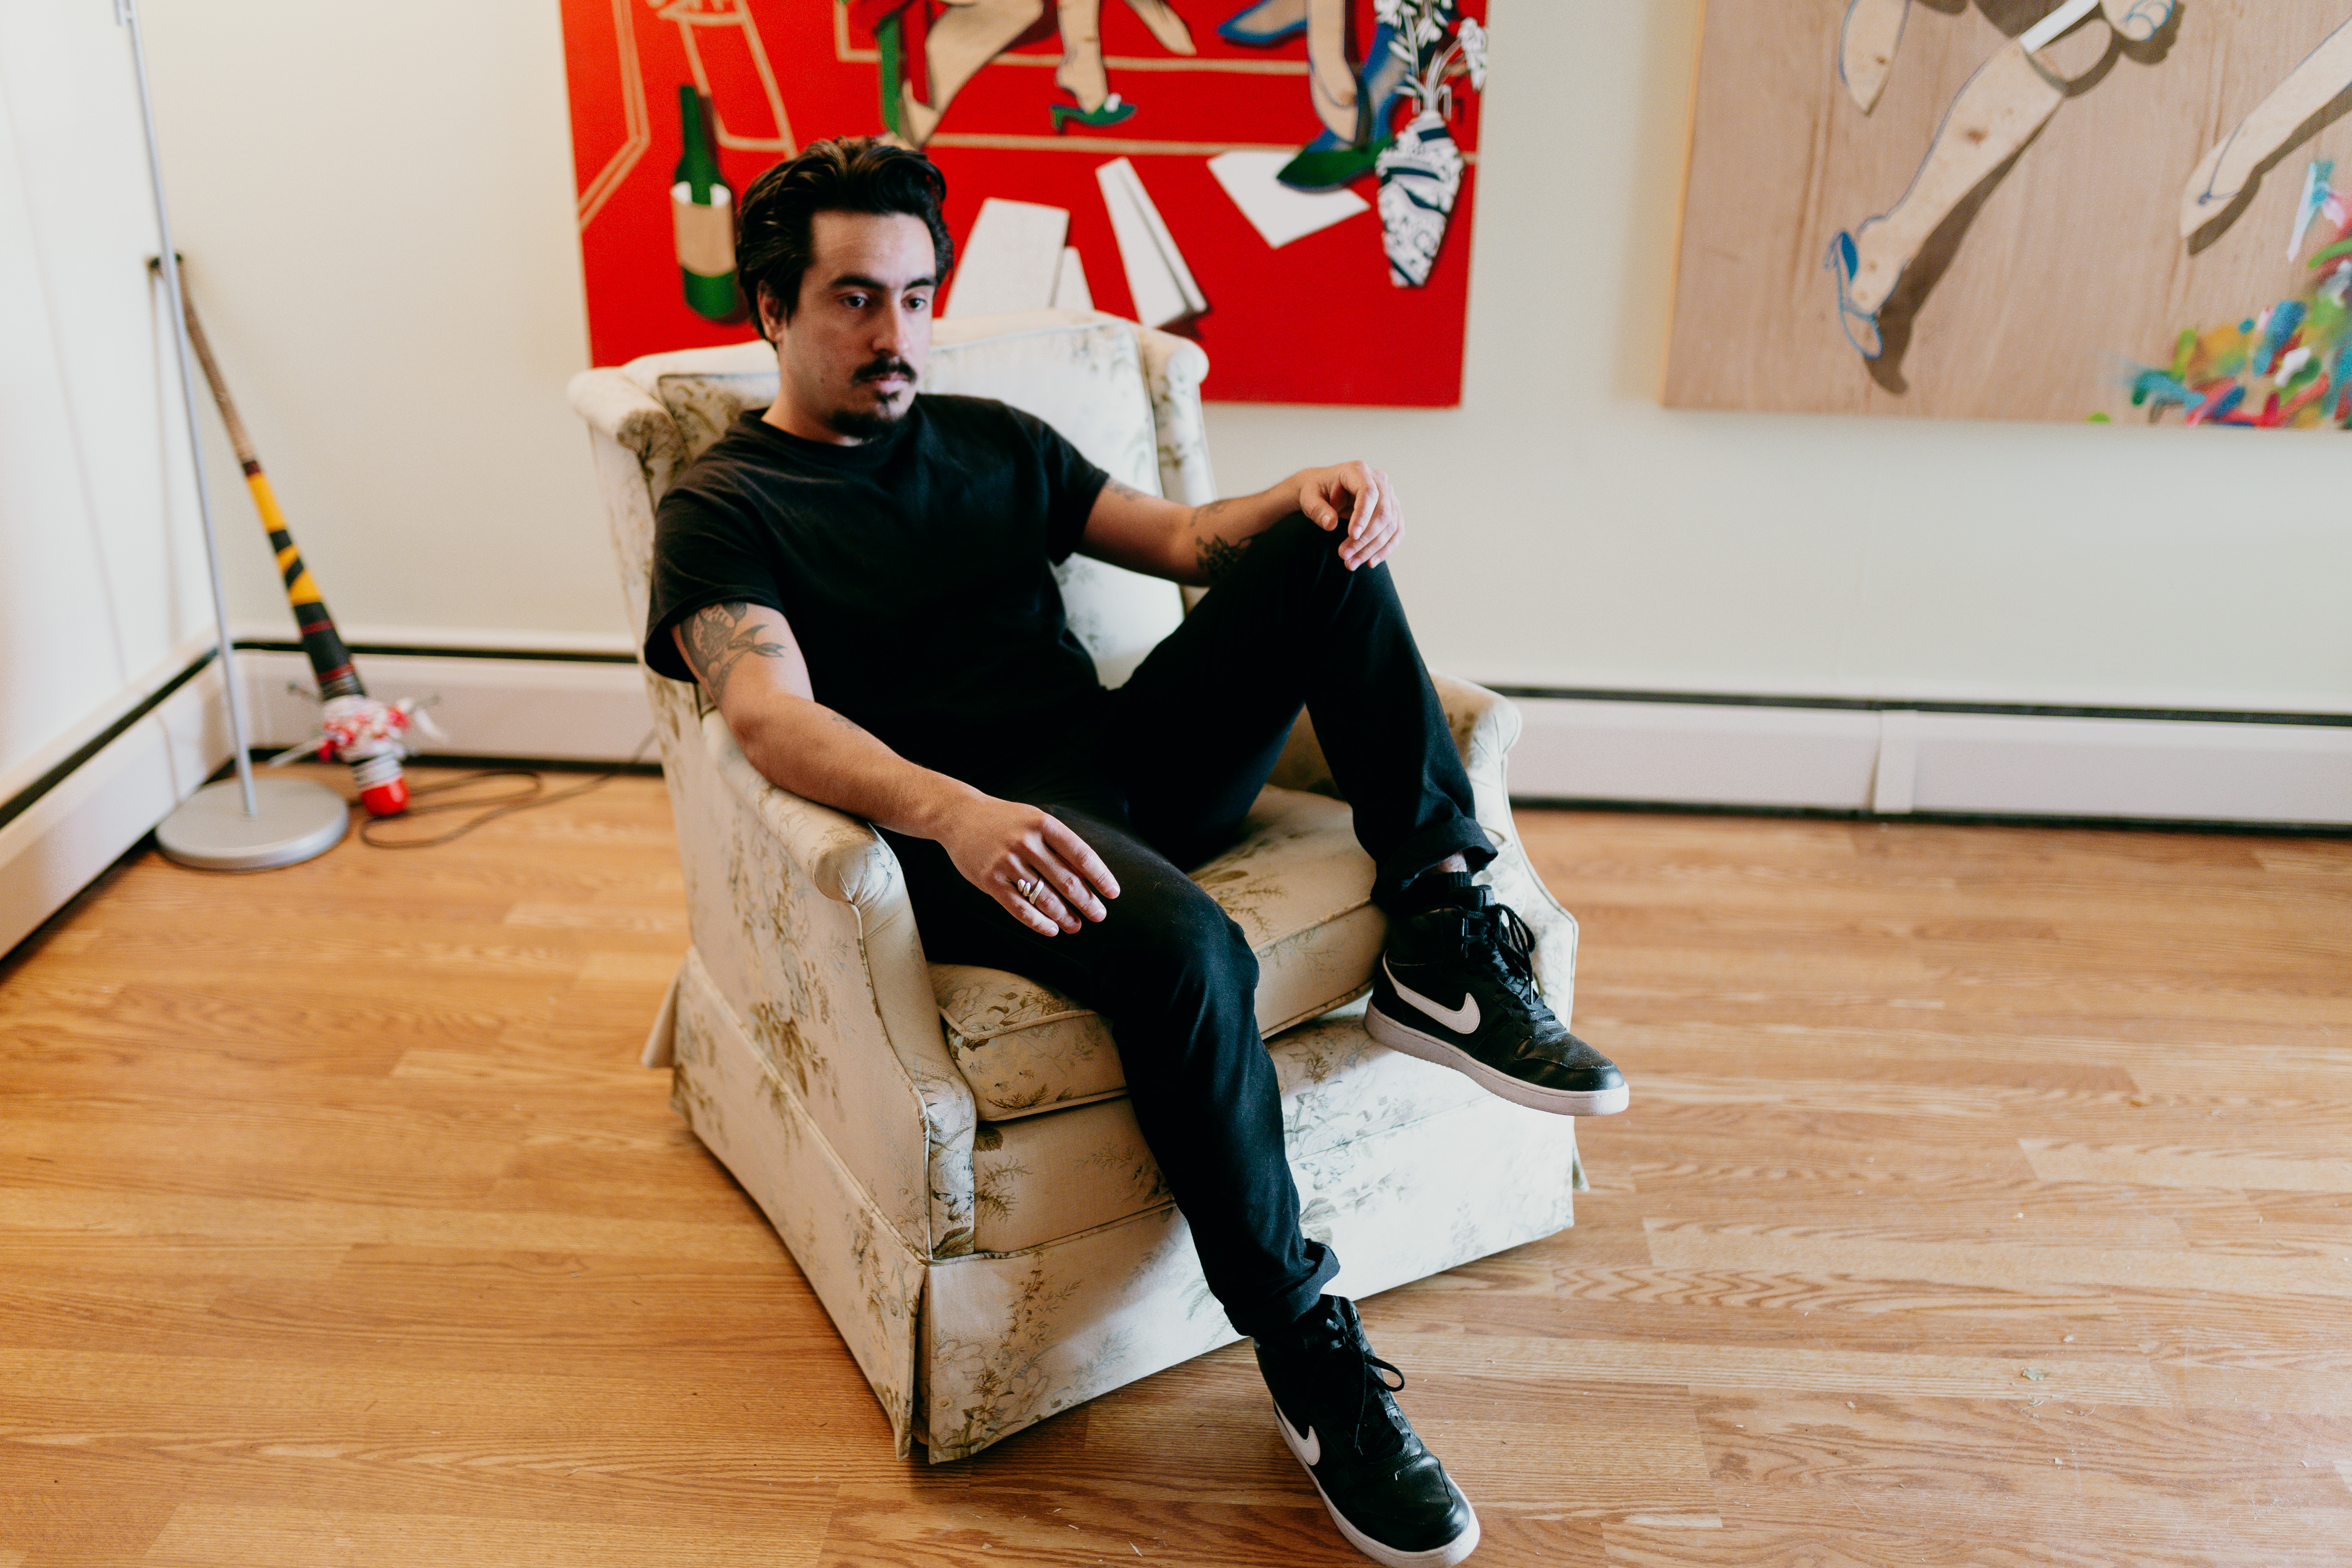 A man in all black sits on a couch in an indoor space.